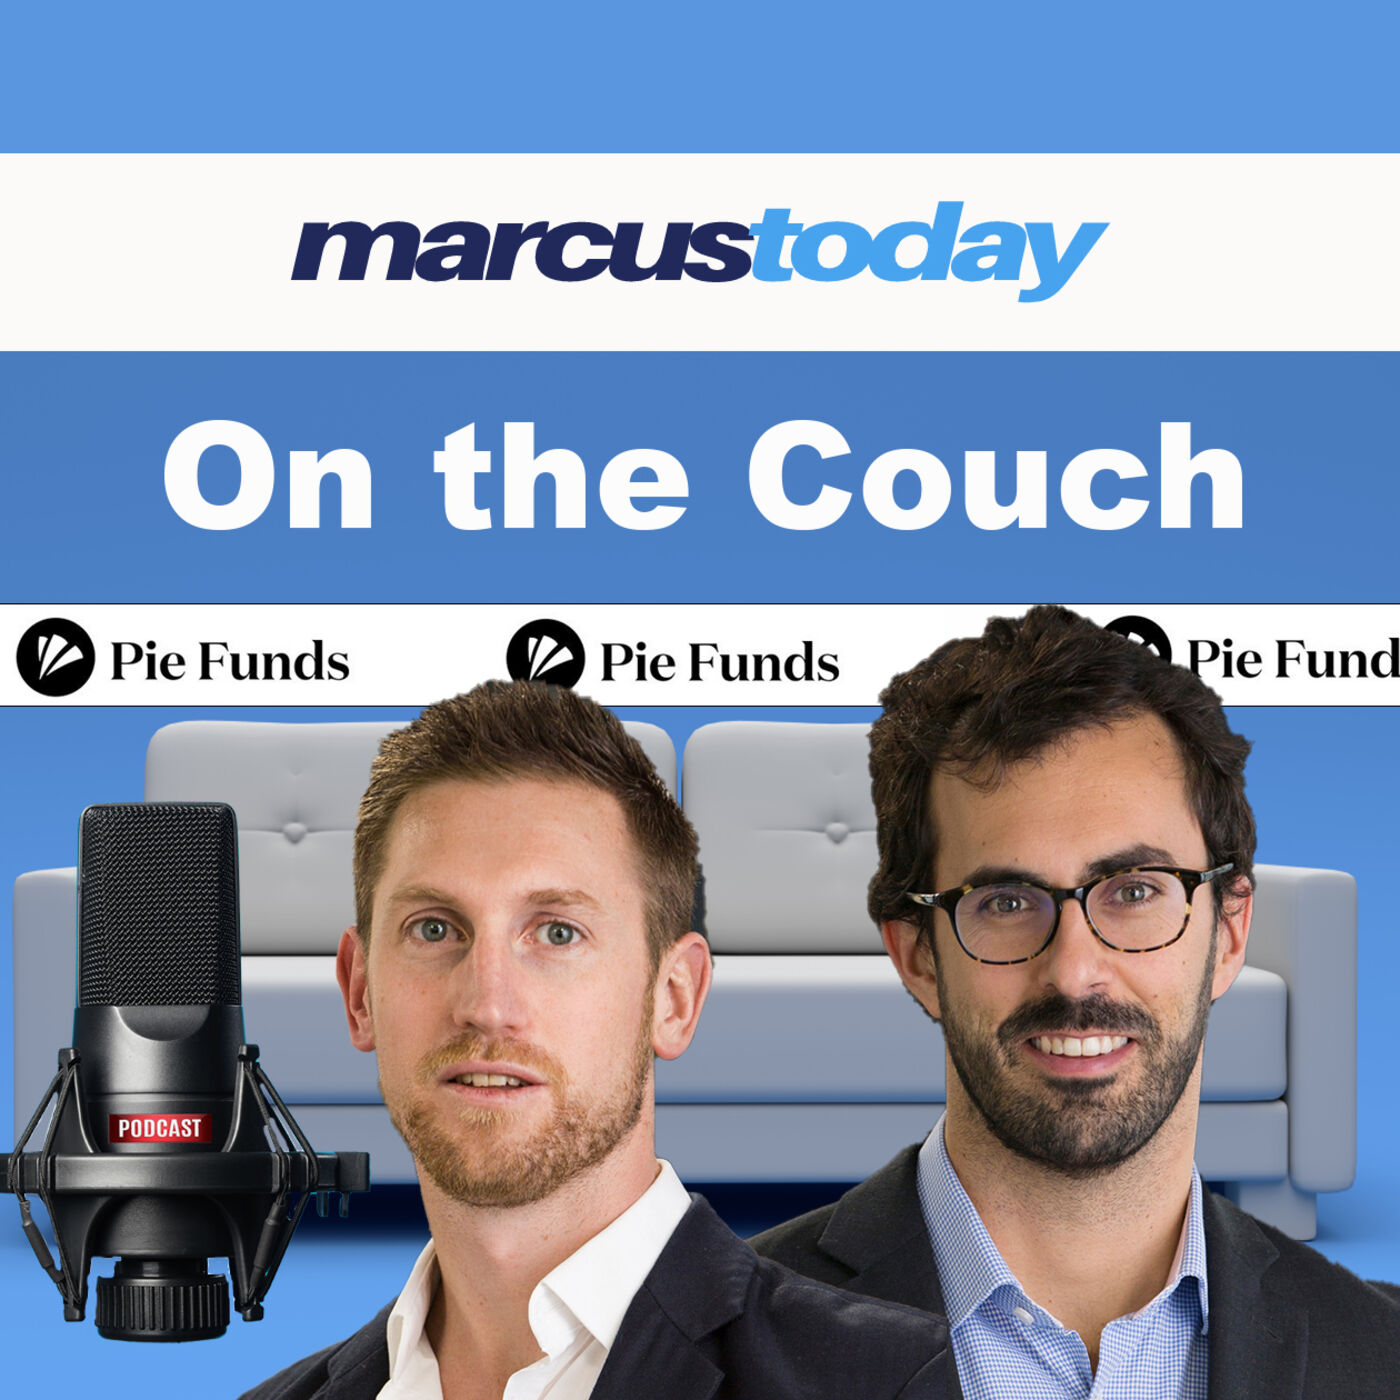 On the Couch with Henry Jennings and the Pie Funds Emerging Growth Fund Team